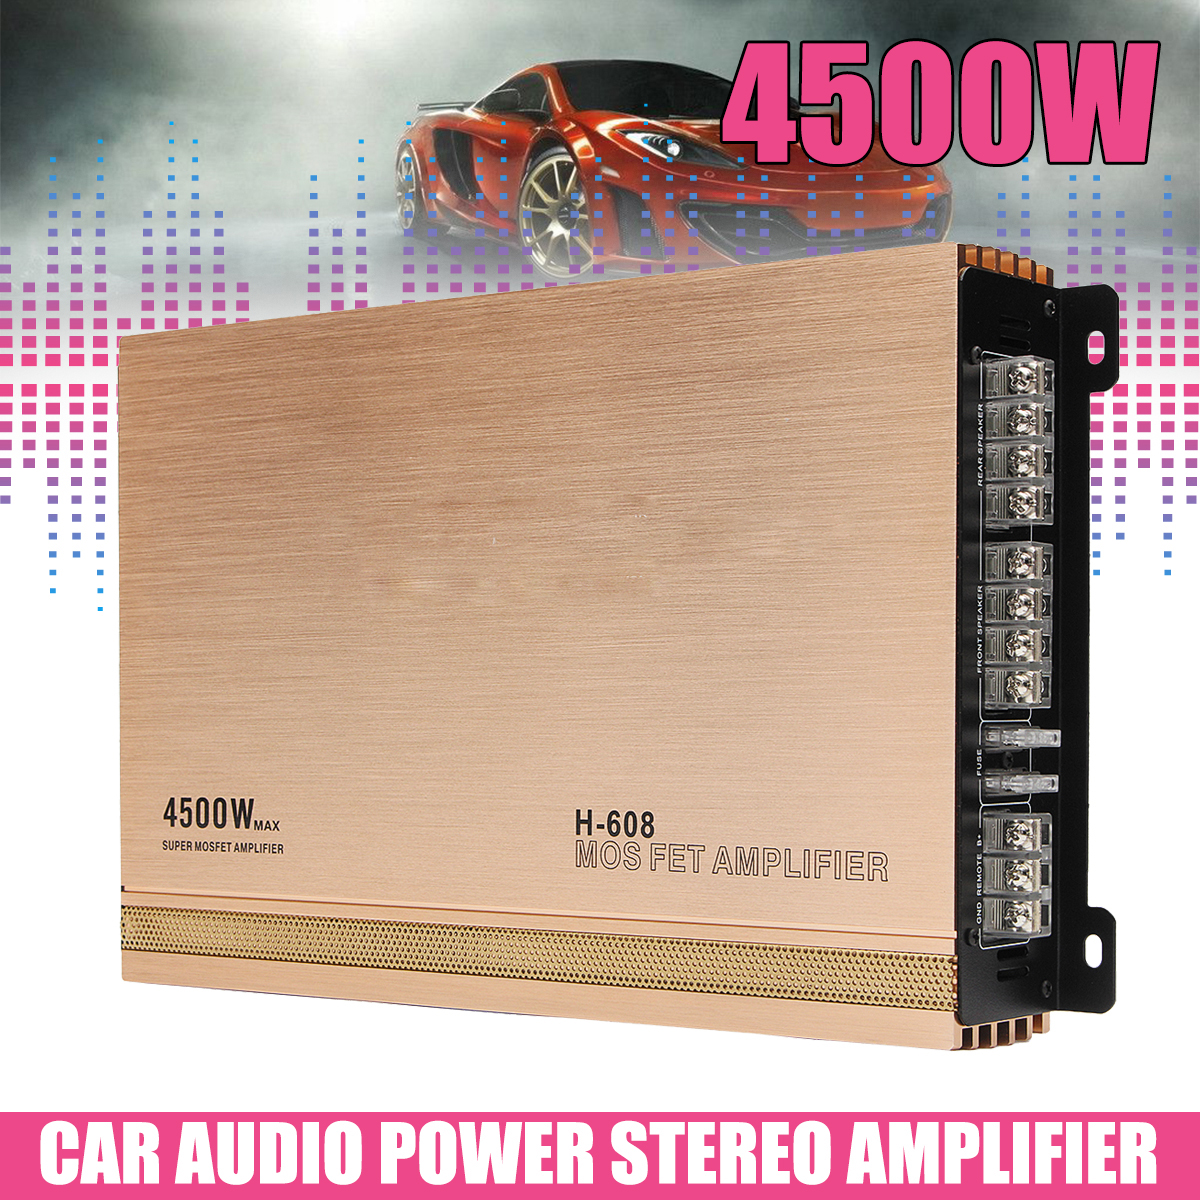 12V 4 Channel Auto Car Audio Amplifiers 4500W Hifi AMP Audio Power Stereo Amplifiers Speaker Subwoofers for Car Truck Motorcycle black 12v car amplifier high power 1900w audio 4 channel 4 way amplifiers booster auto free shipping dropping